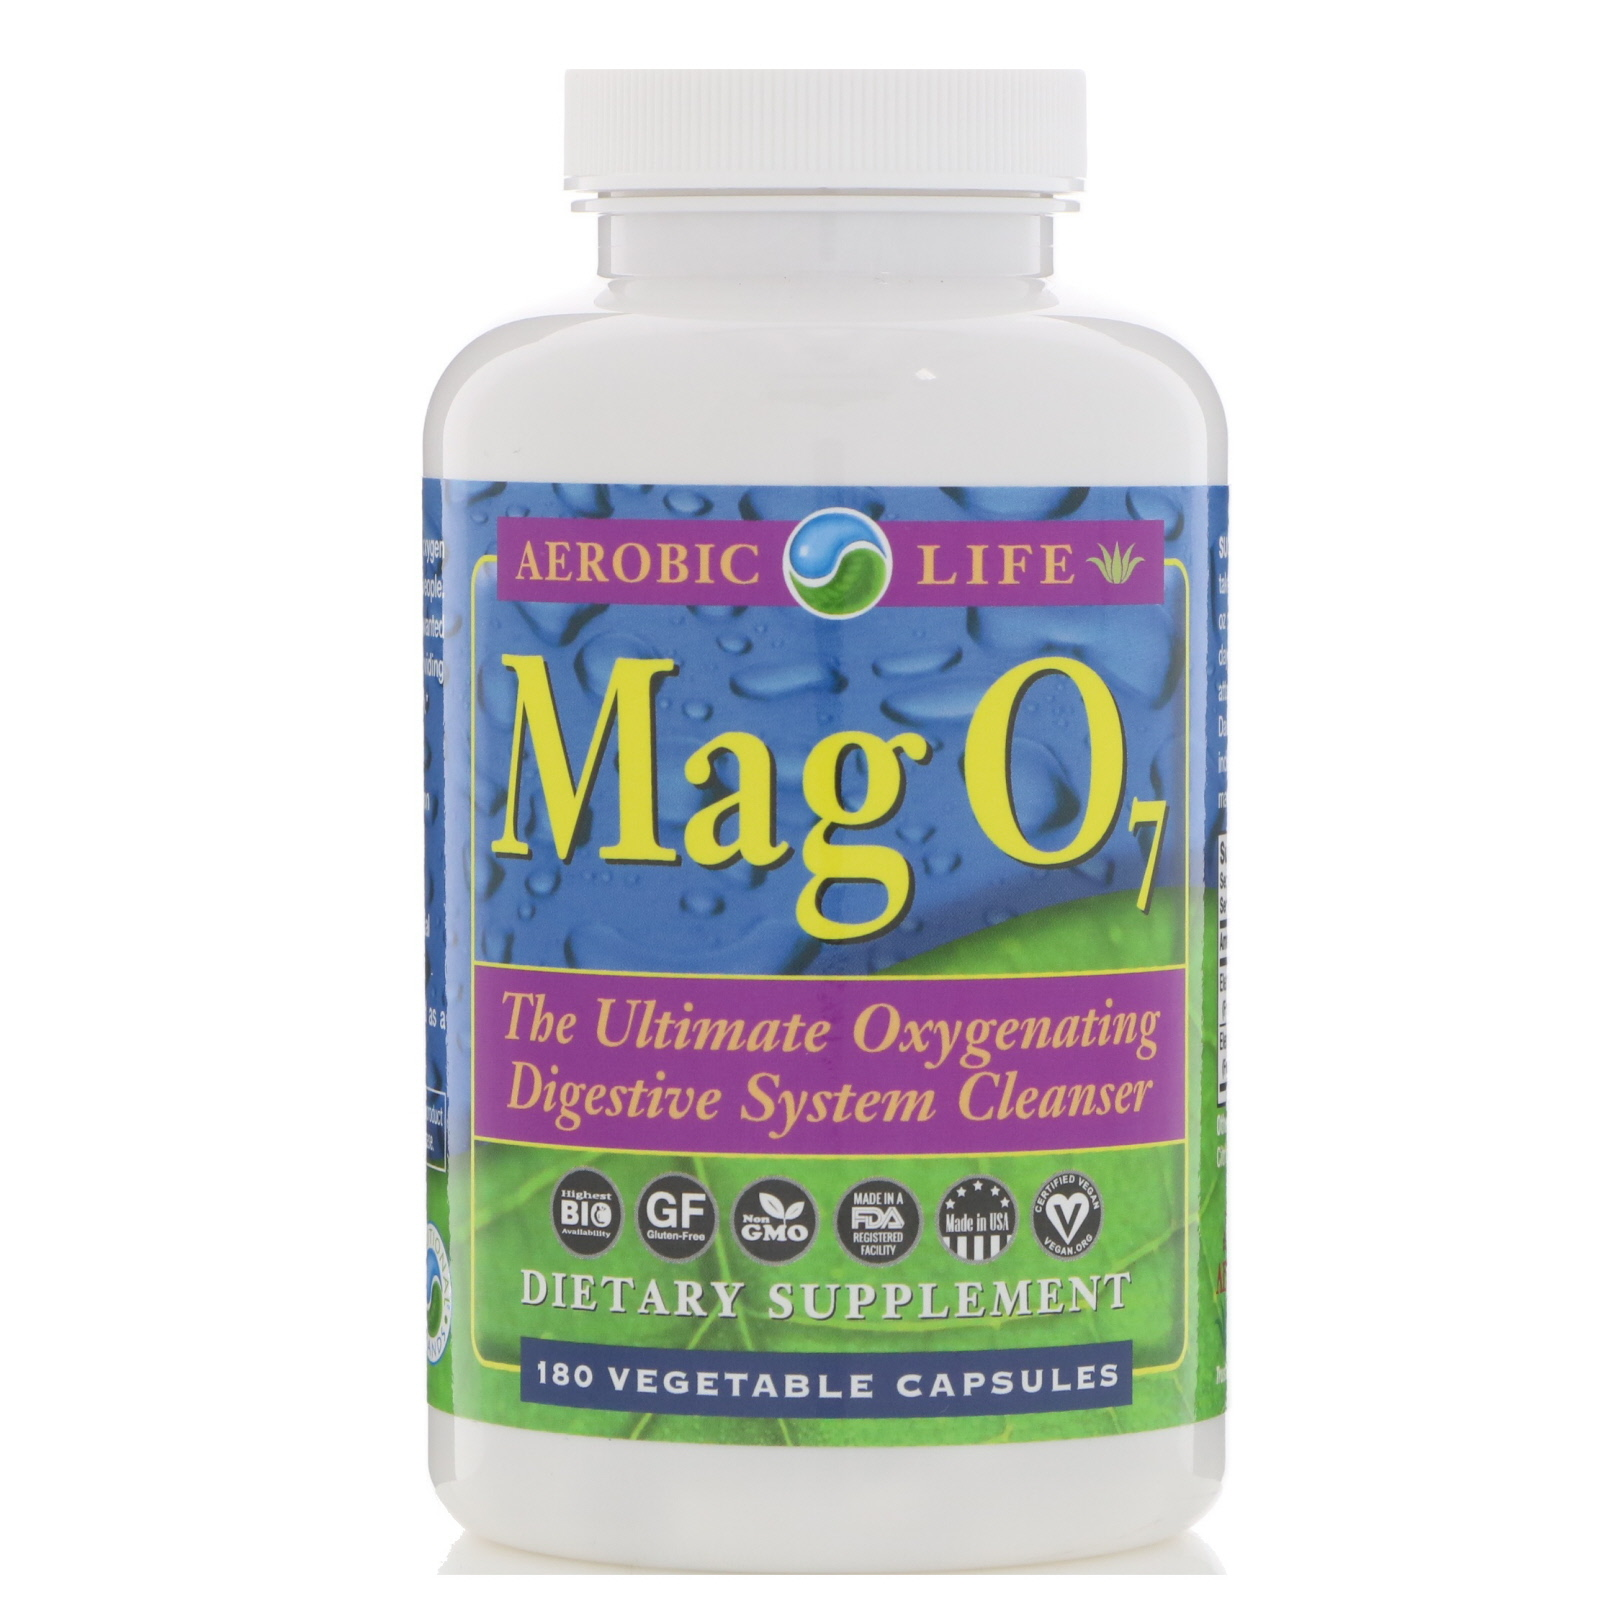 garden greens colon cleanse. Aerobic Life, Mag 07, The Ultimate Oxygenating Digestive System Cleanser, 180 Vegetable Capsules Garden Greens Colon Cleanse